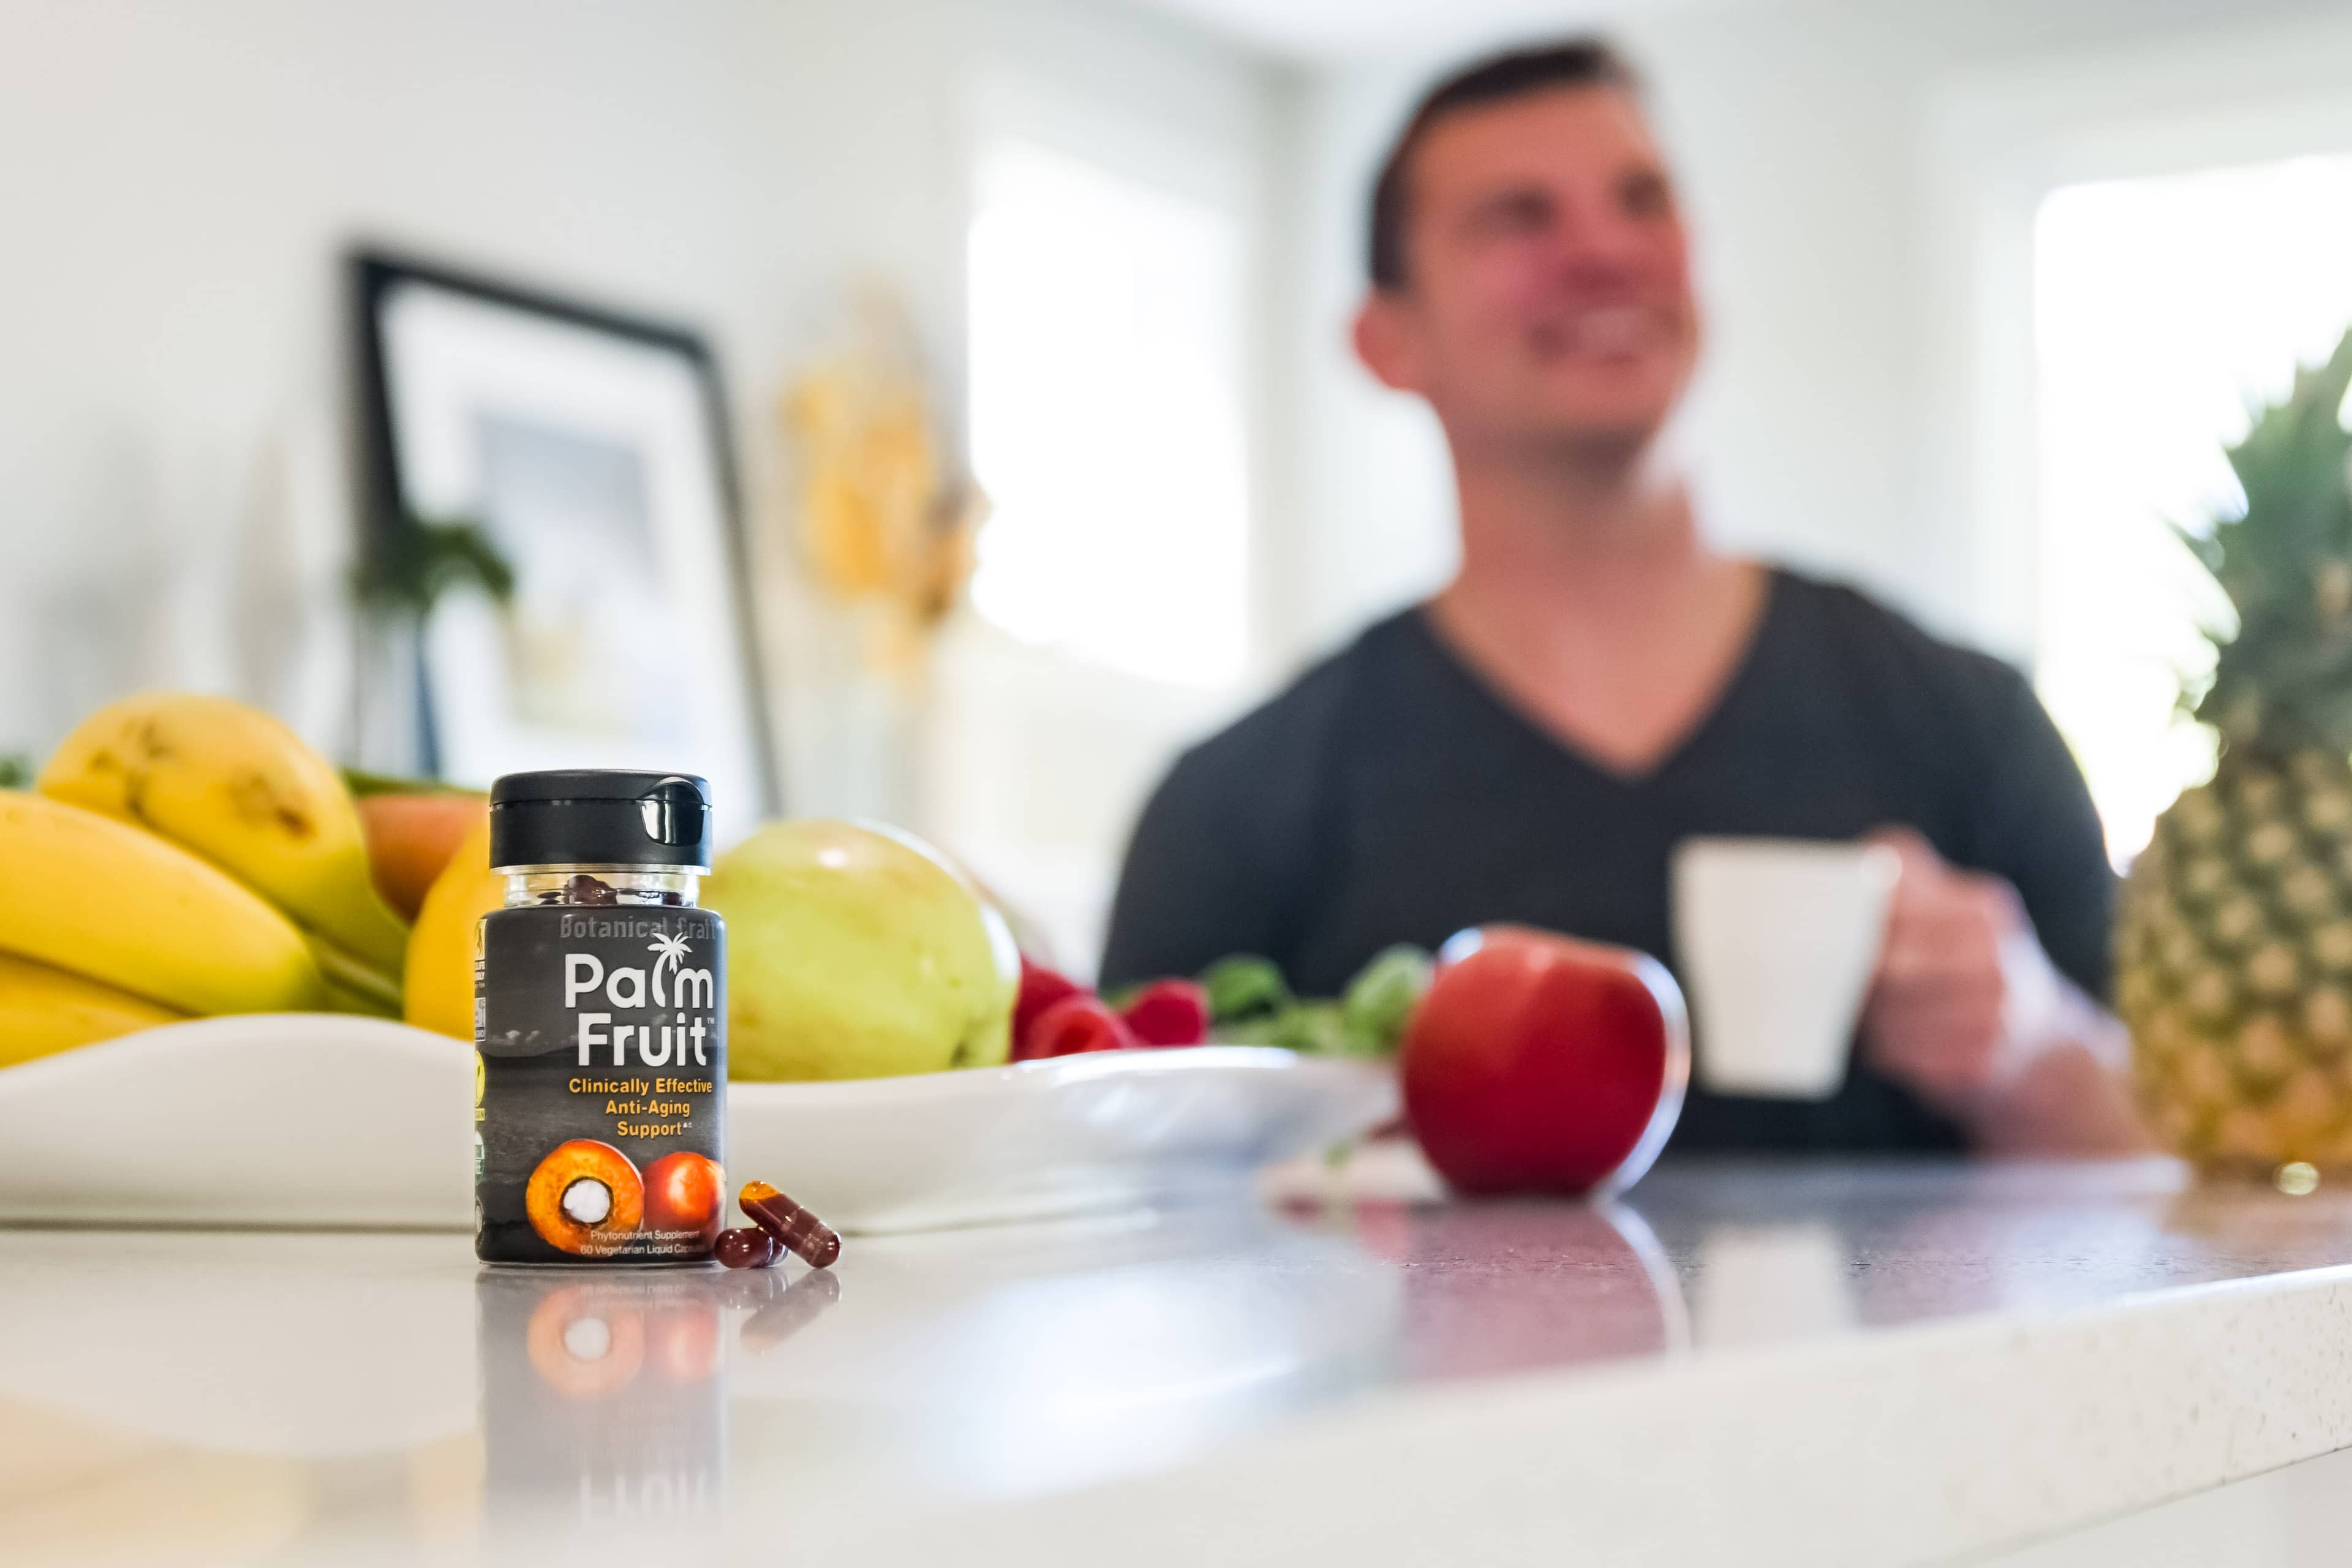 Palm Fruit bottle and liquid capsules sitting on counter top next to plate of fruit.